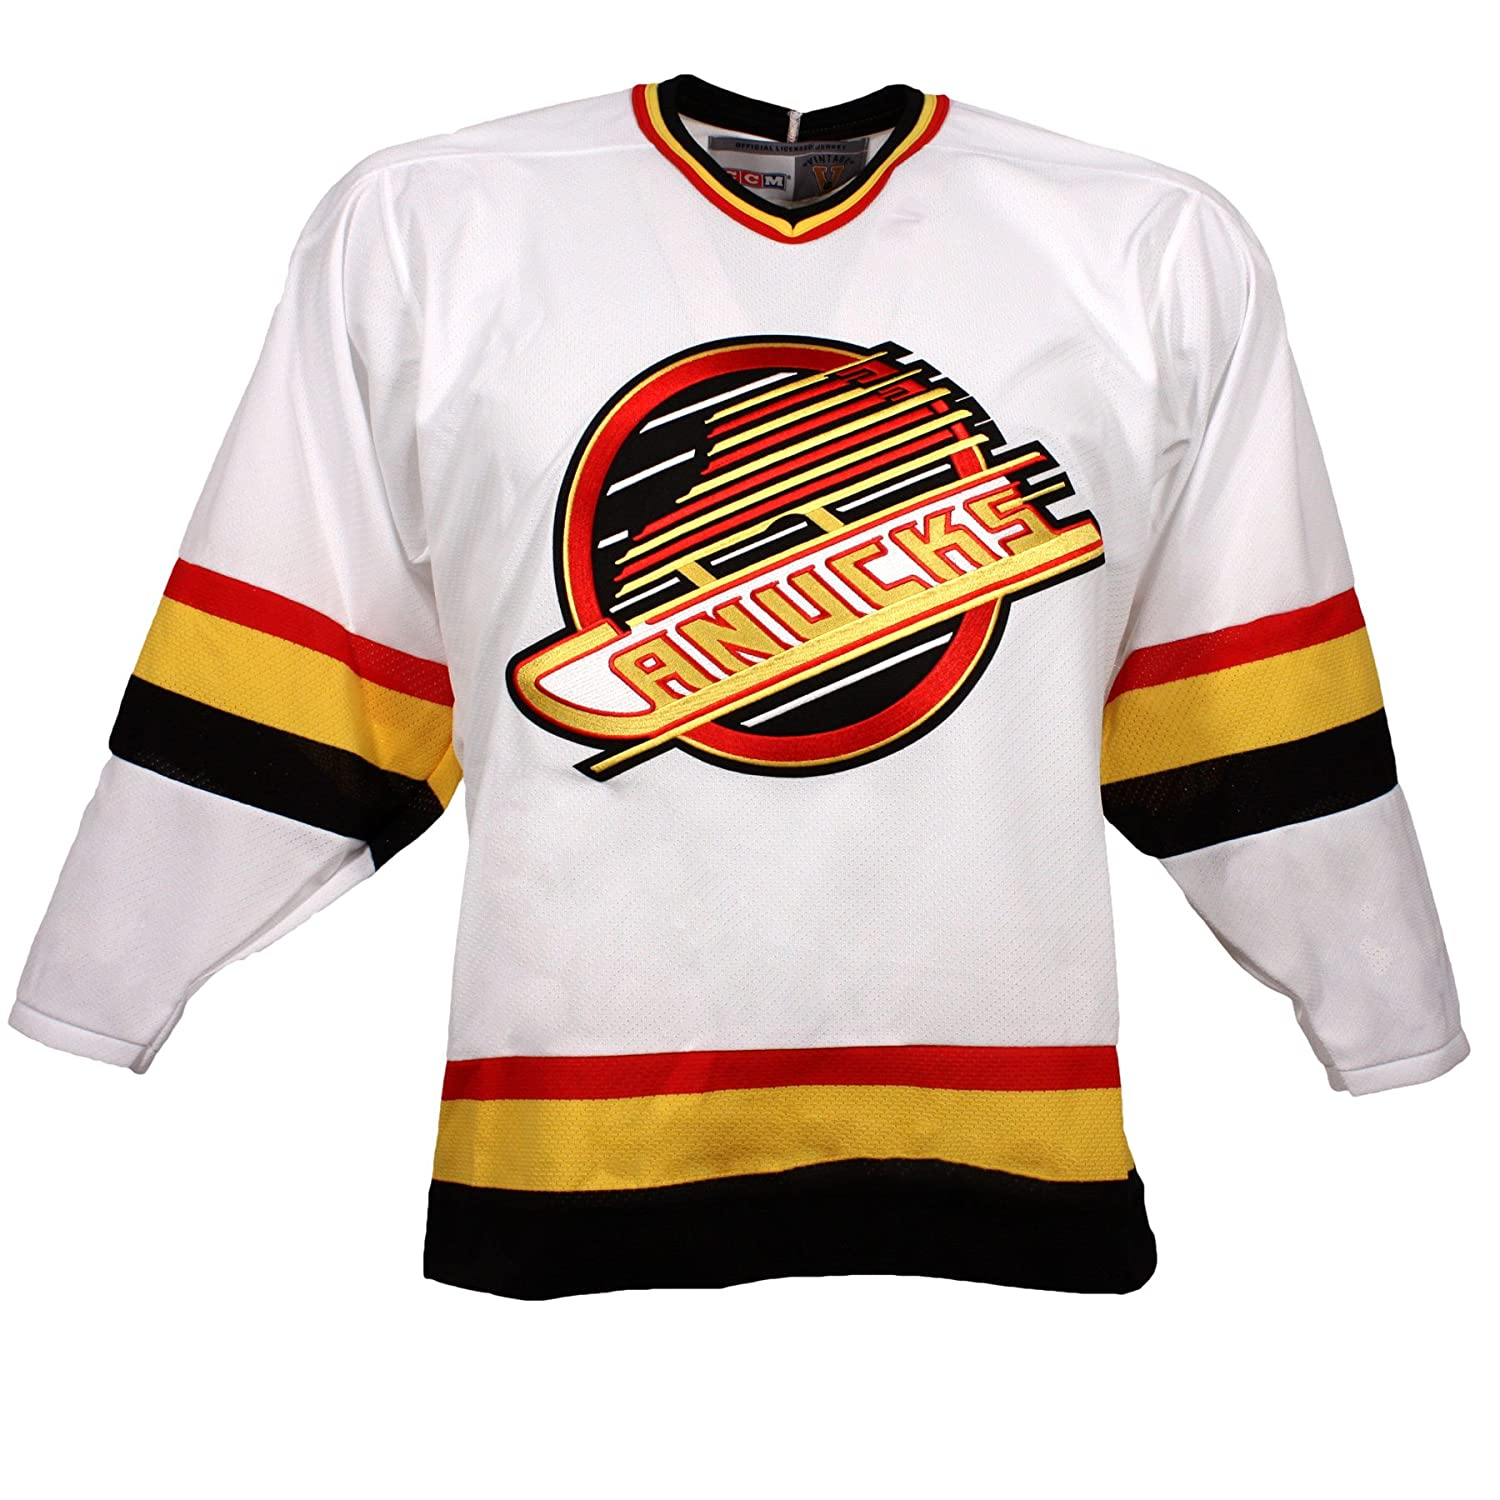 da7473480 Amazon.com   Vancouver Canucks Vintage Replica Jersey 1994 (Home) - M    Sports   Outdoors